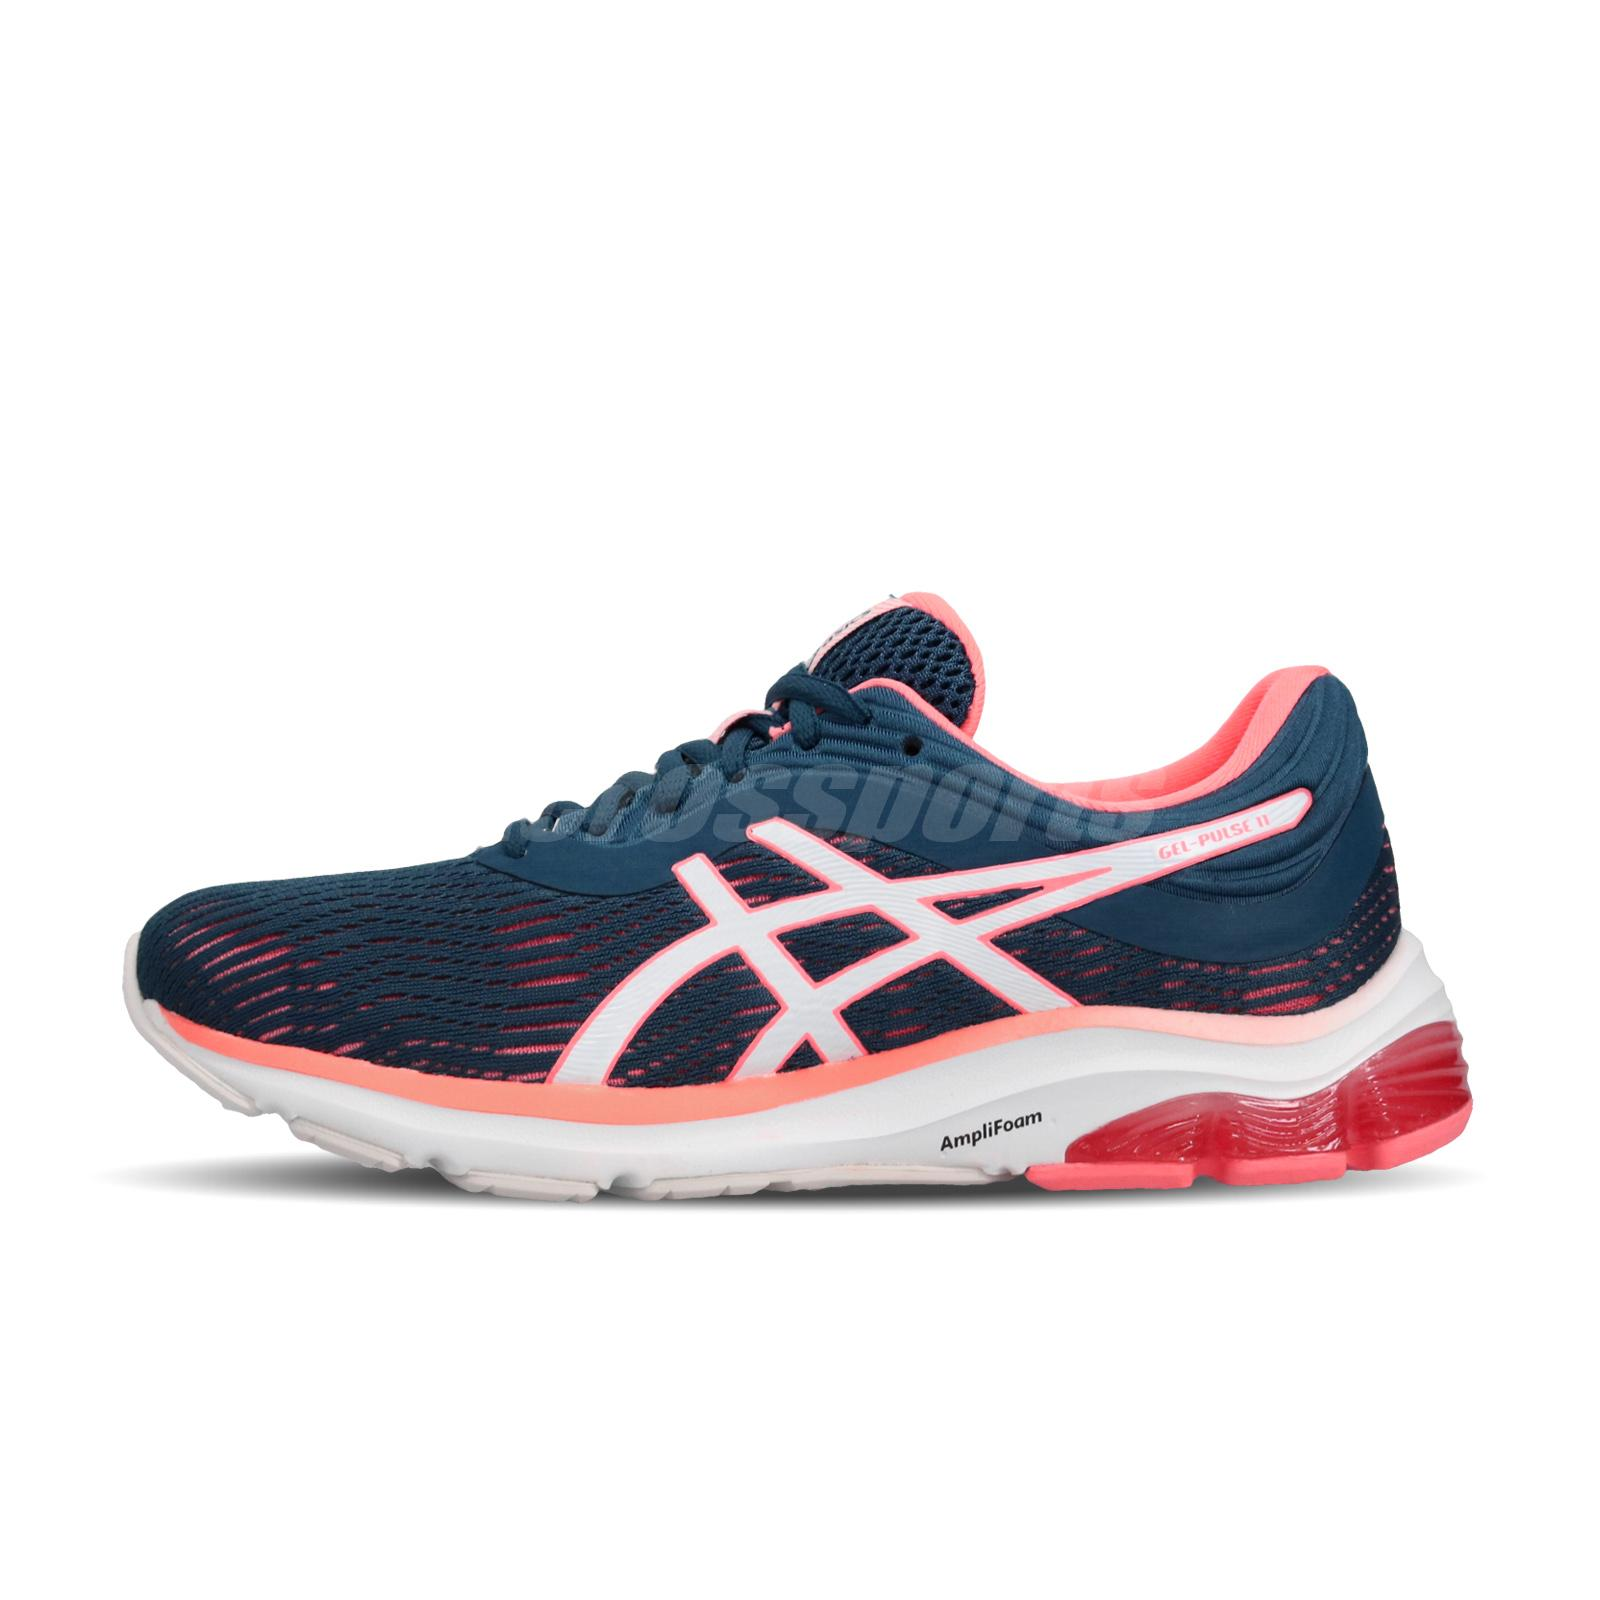 cacfe1fa07 Details about Asics Gel-Pulse 11 Mako Blue Sun Coral Women Running Shoes  Sneakers 1012A467-401